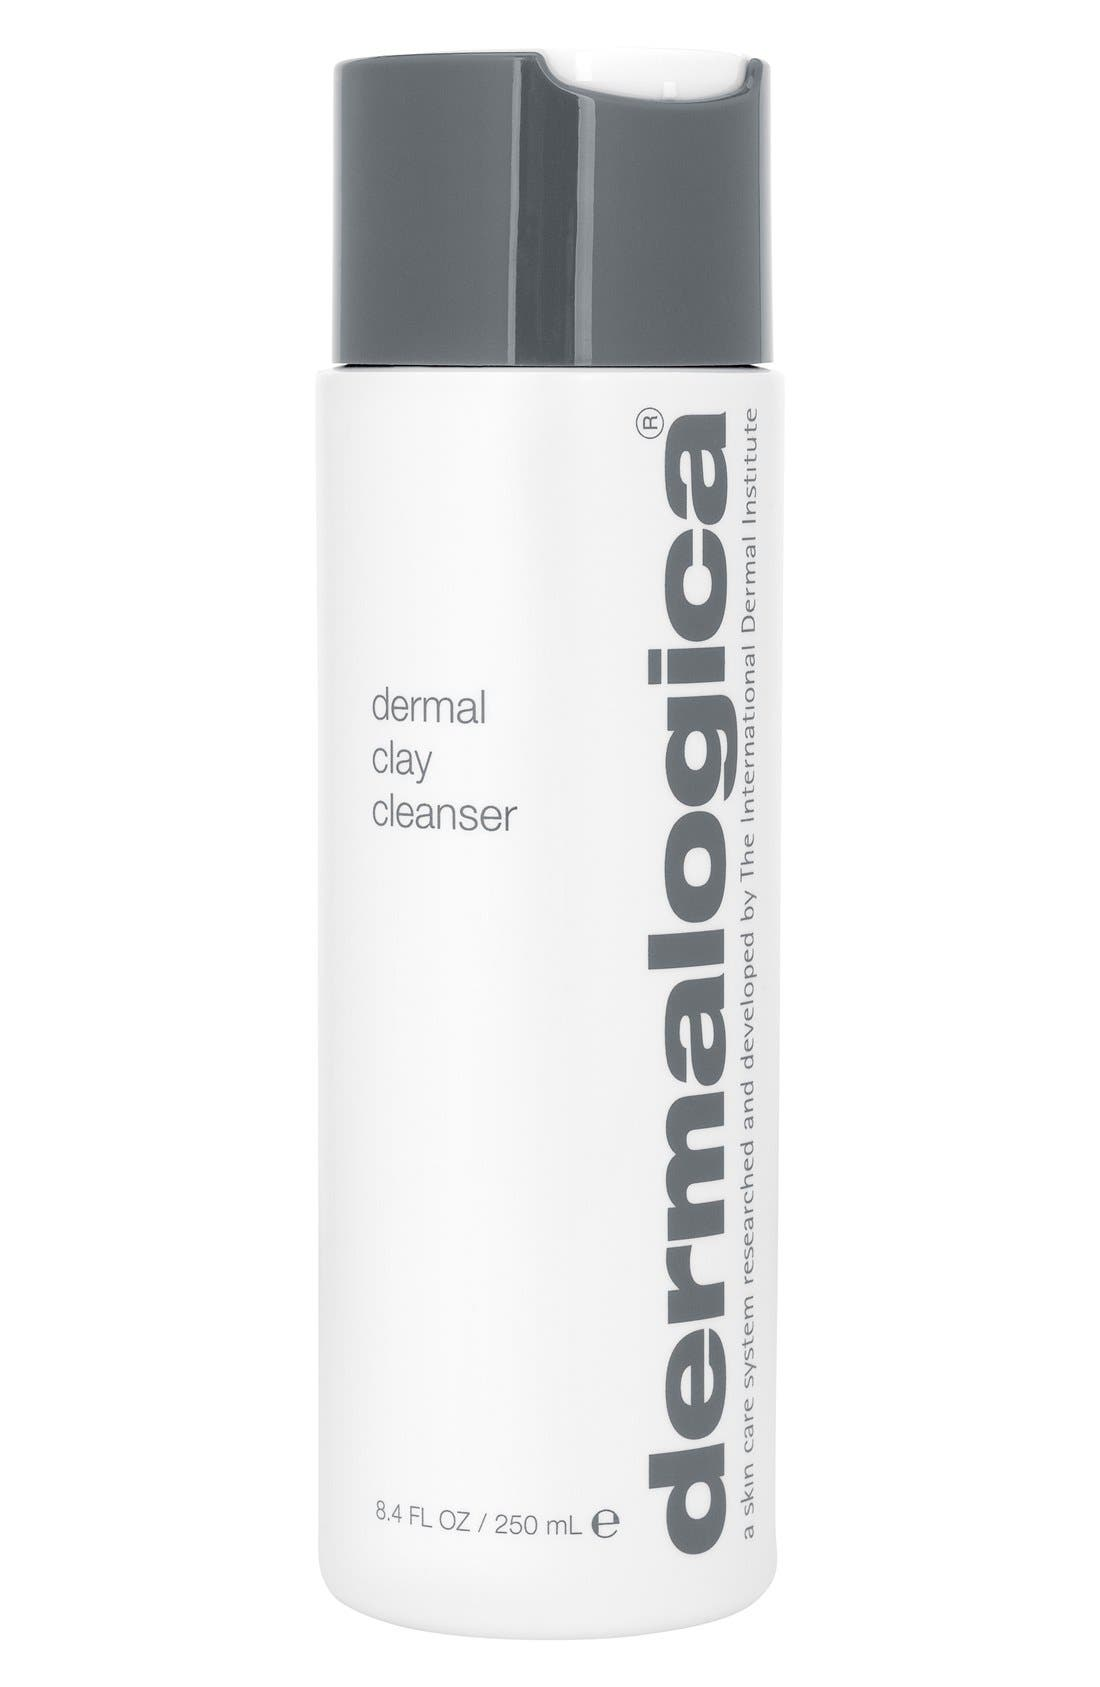 dermalogica® Dermal Clay Cleanser